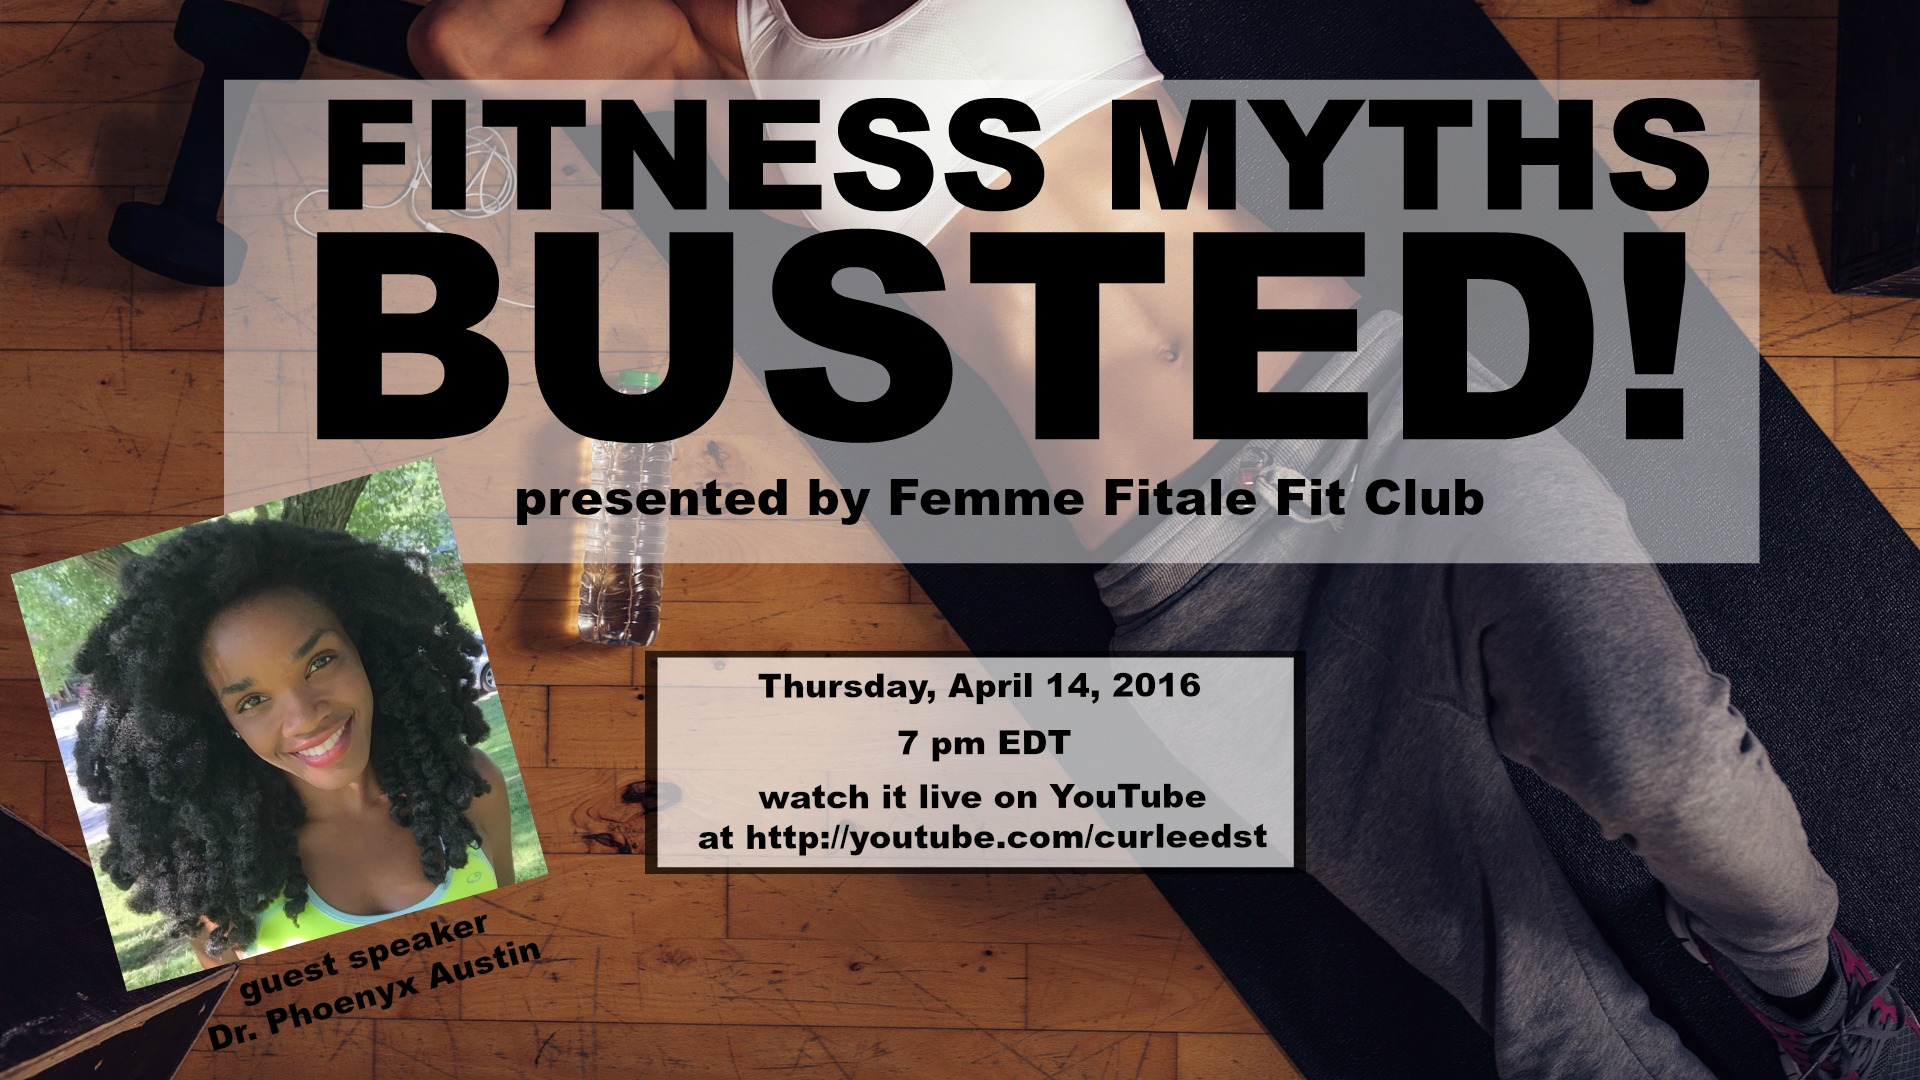 Fitness Myths Busted! webinar